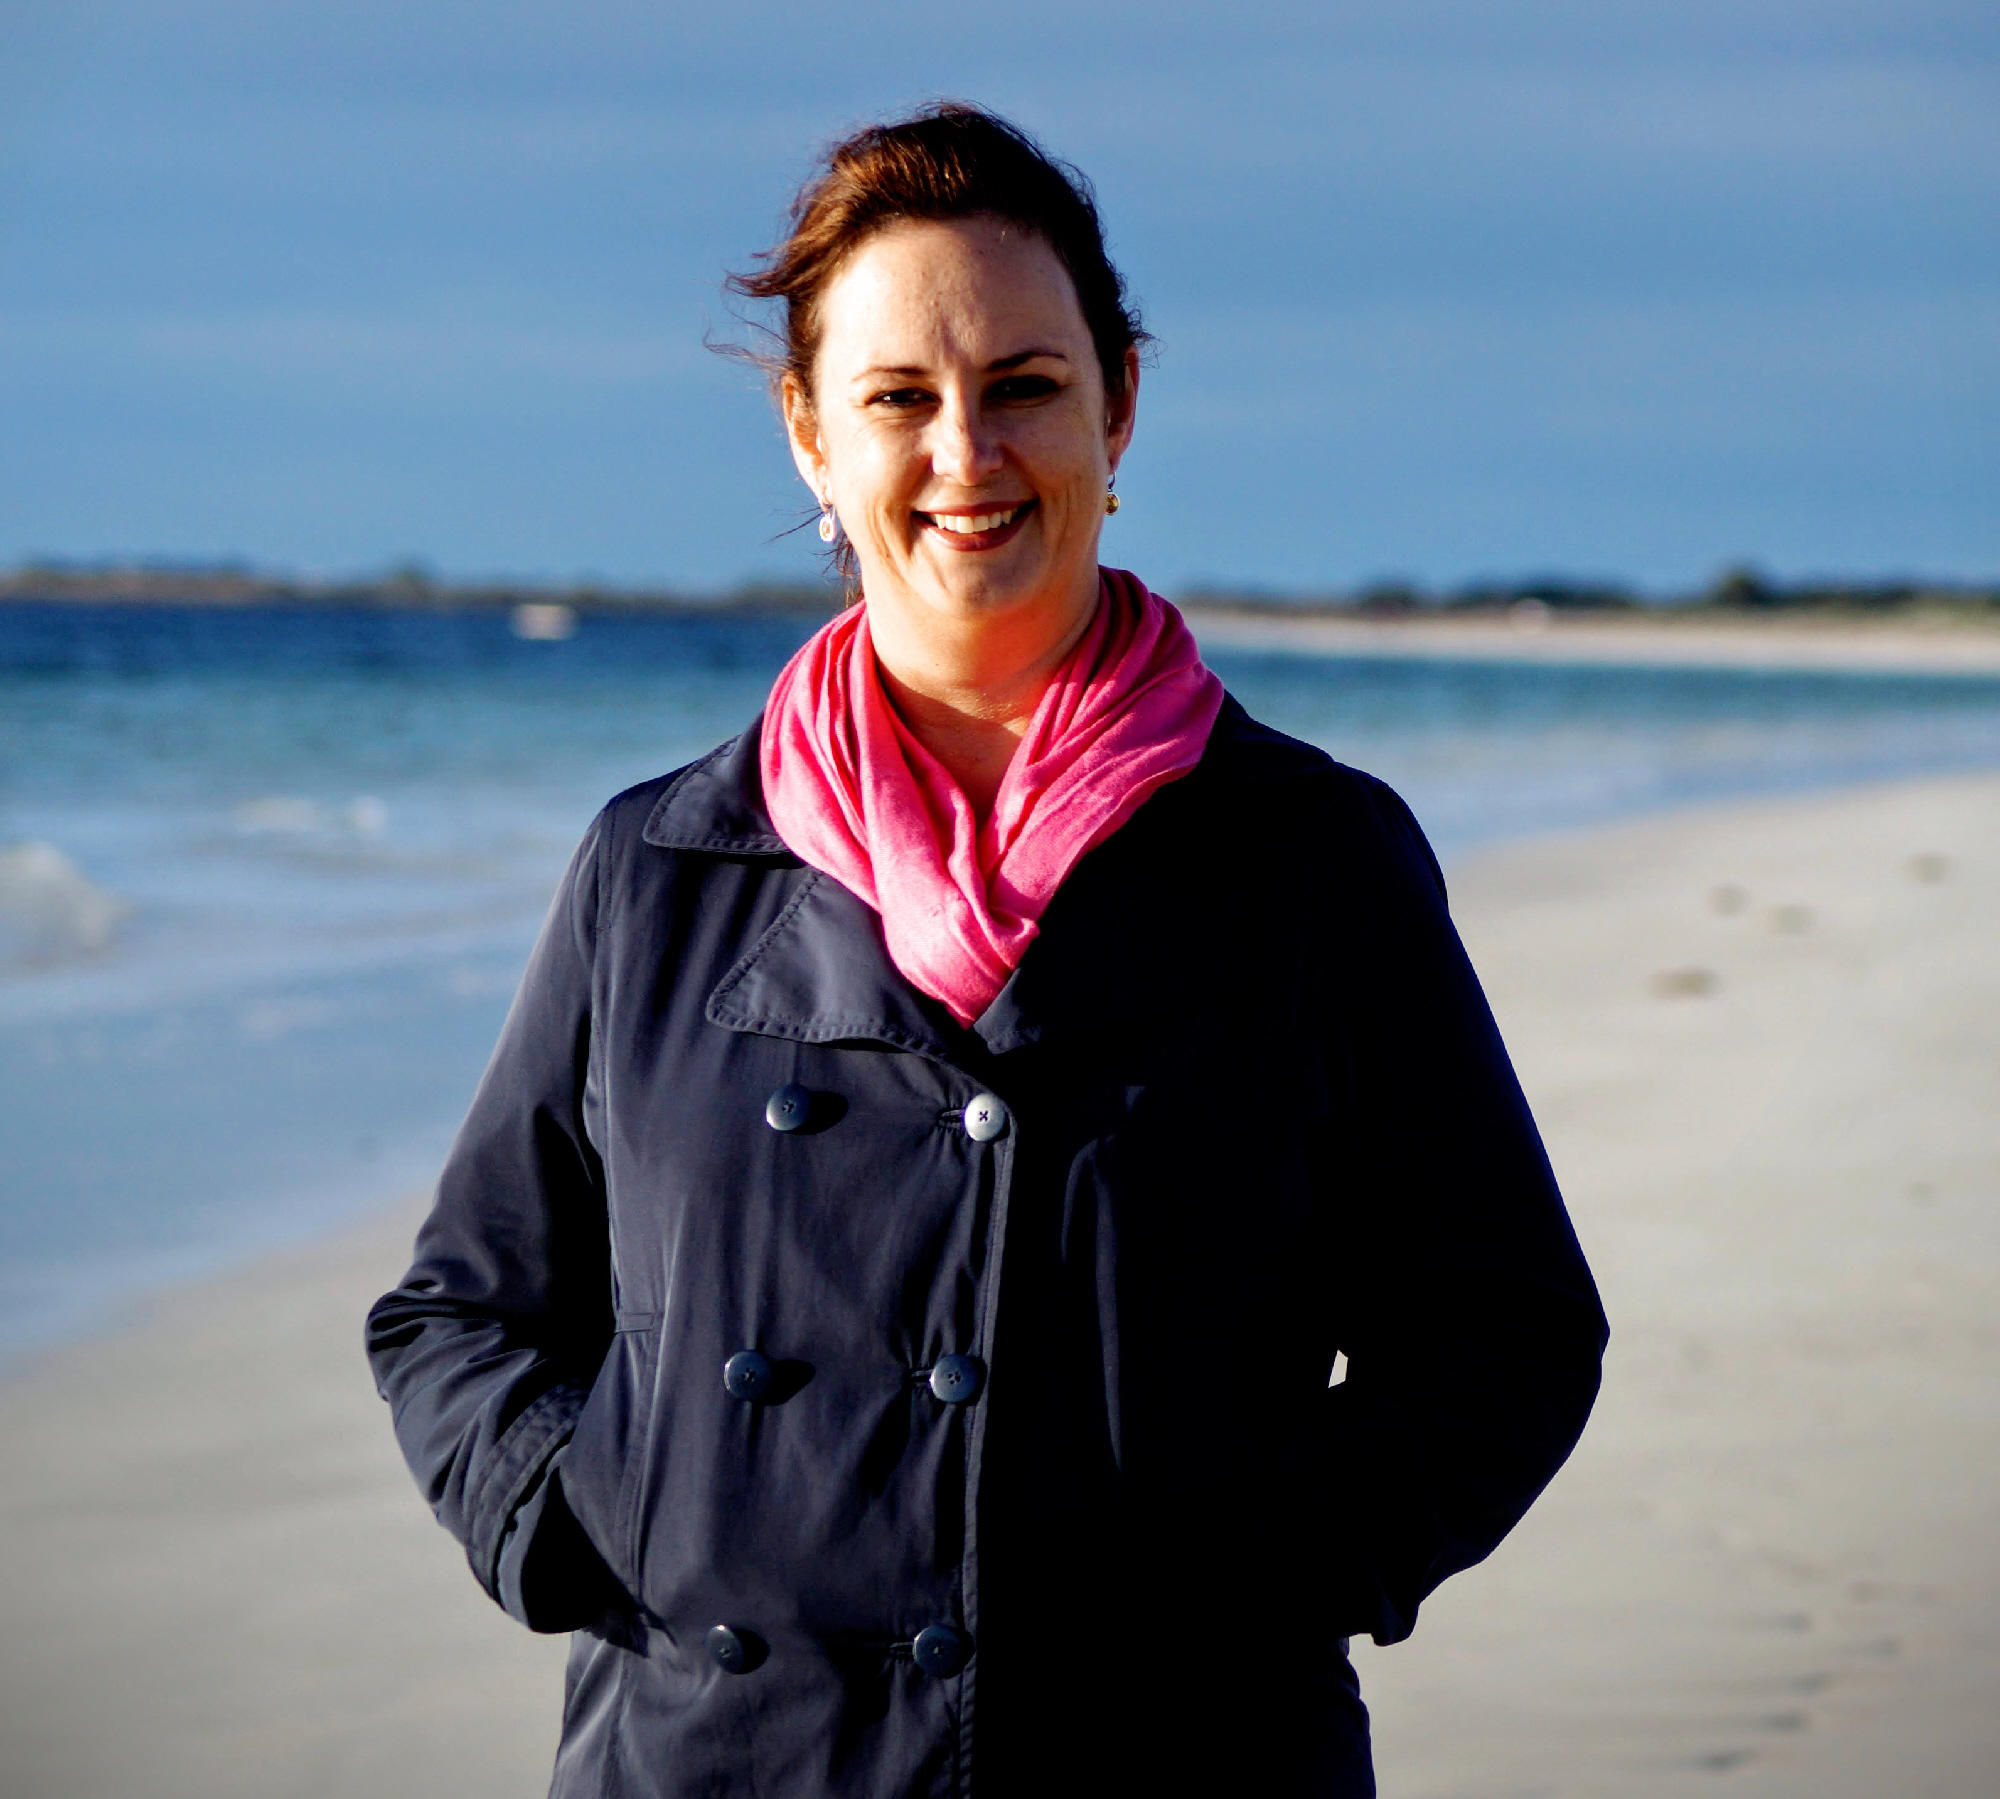 PR expert Felicity Moore stands smiling on a beach. Felicity wears a dark blue jacket and pink scarf.